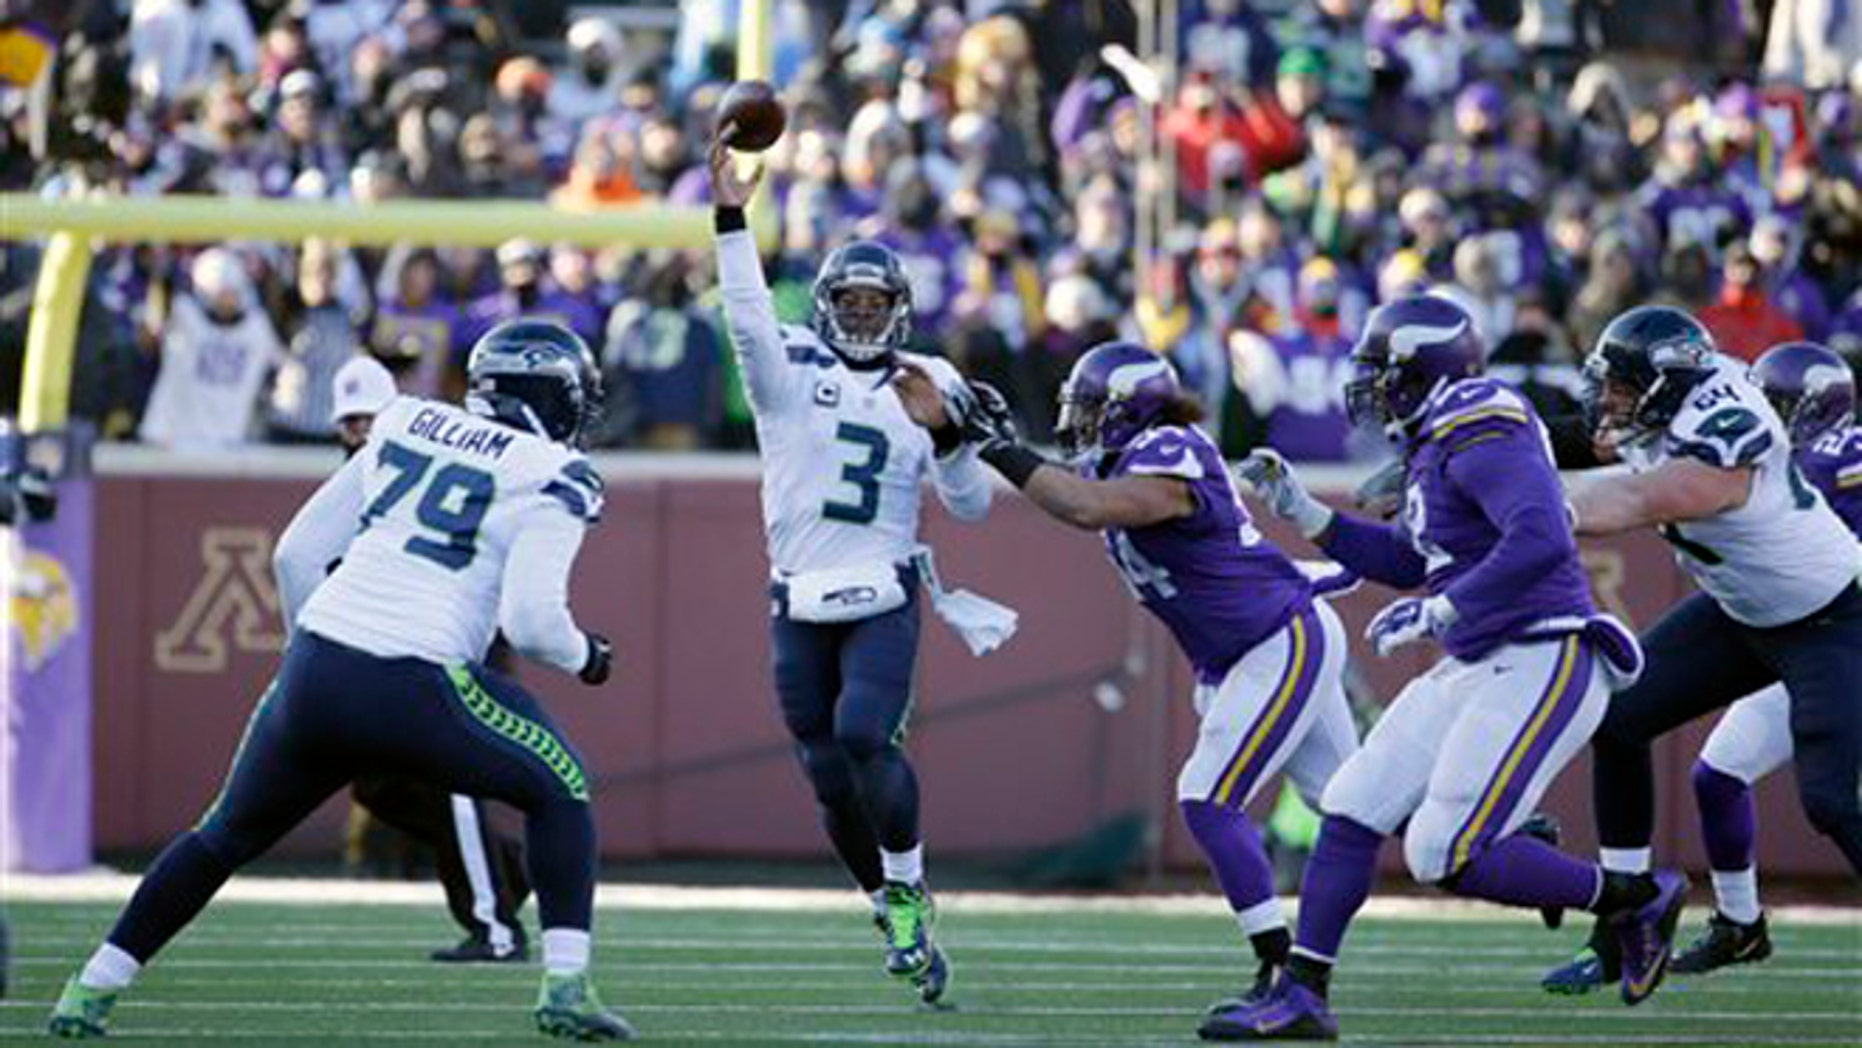 Seattle Seahawks quarterback Russell Wilson (3) throws a pass to Seattle Seahawks wide receiver Tyler Lockett during the second half of an NFL wild-card football game against the Minnesota Vikings, Sunday, Jan. 10, 2016, in Minneapolis. (AP Photo/Nam Y. Huh)